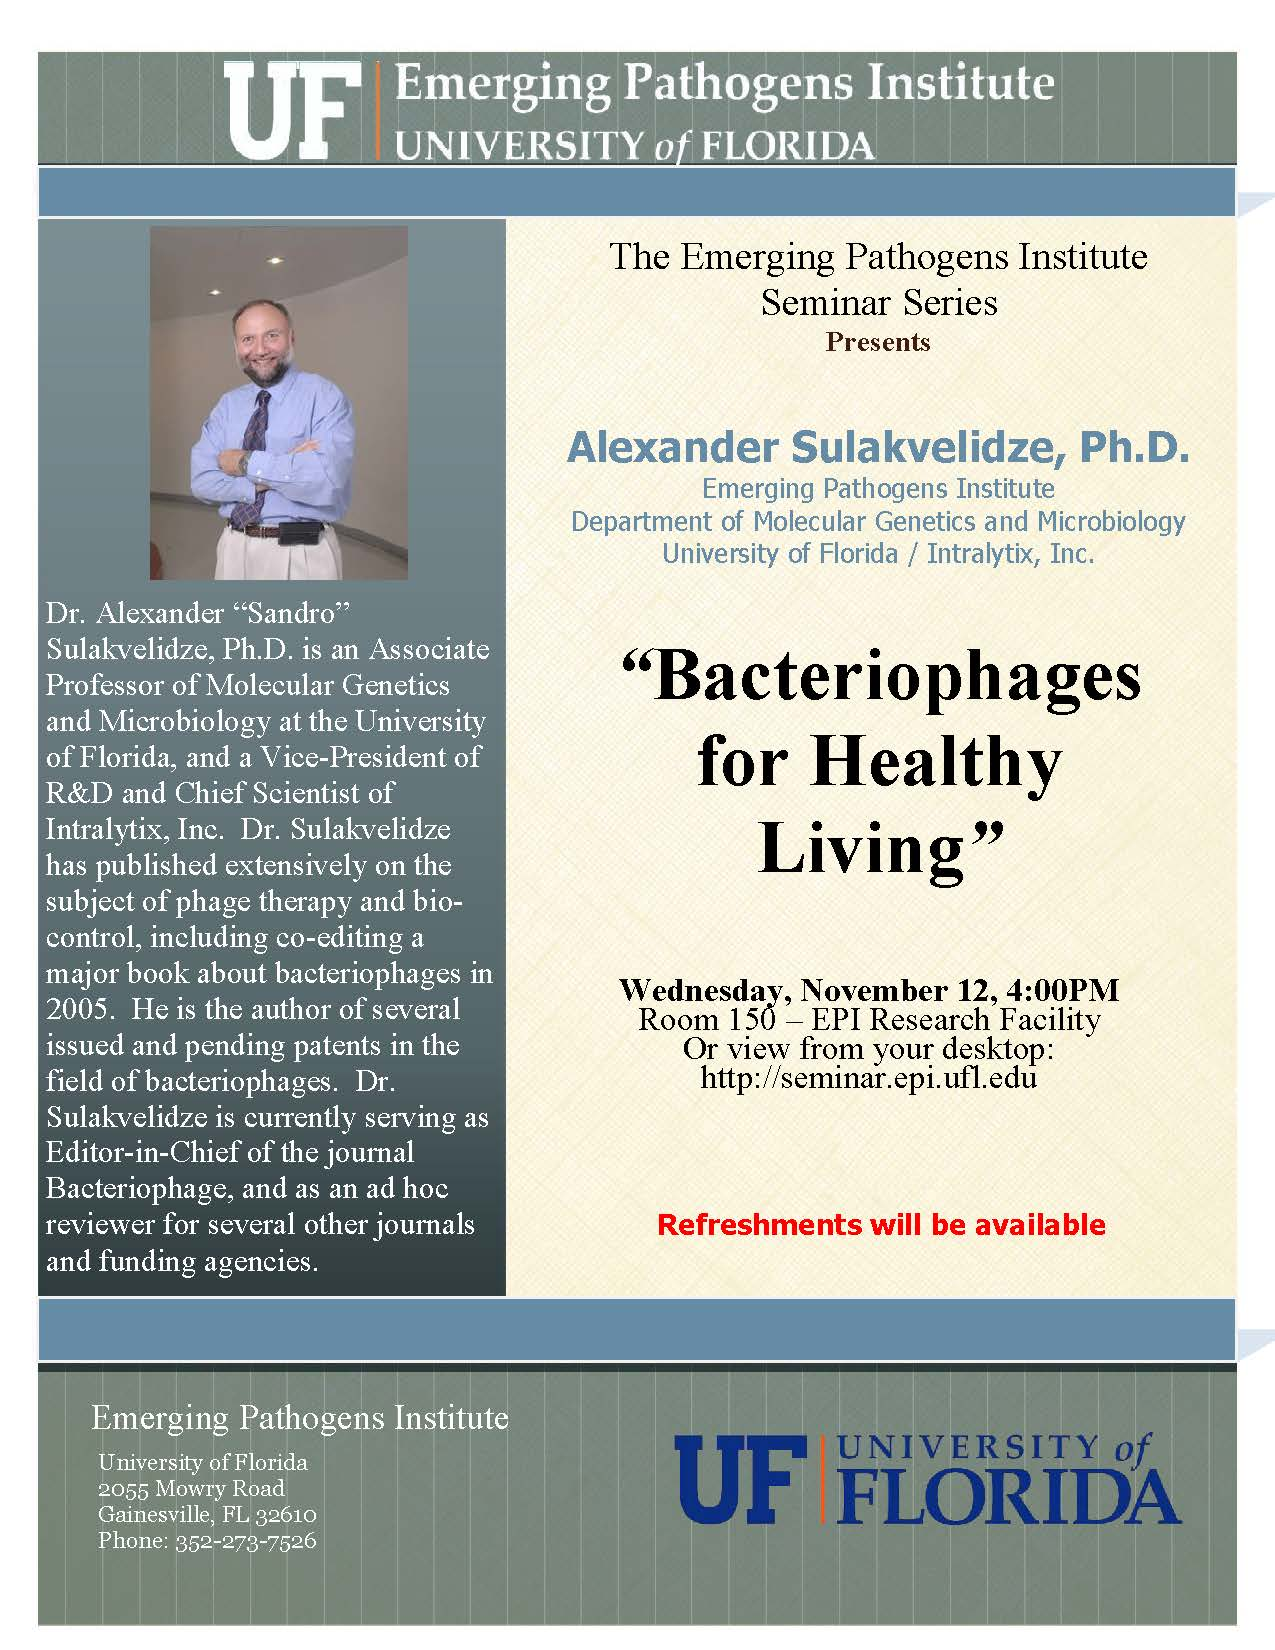 Bacteriophages for Healthy Living